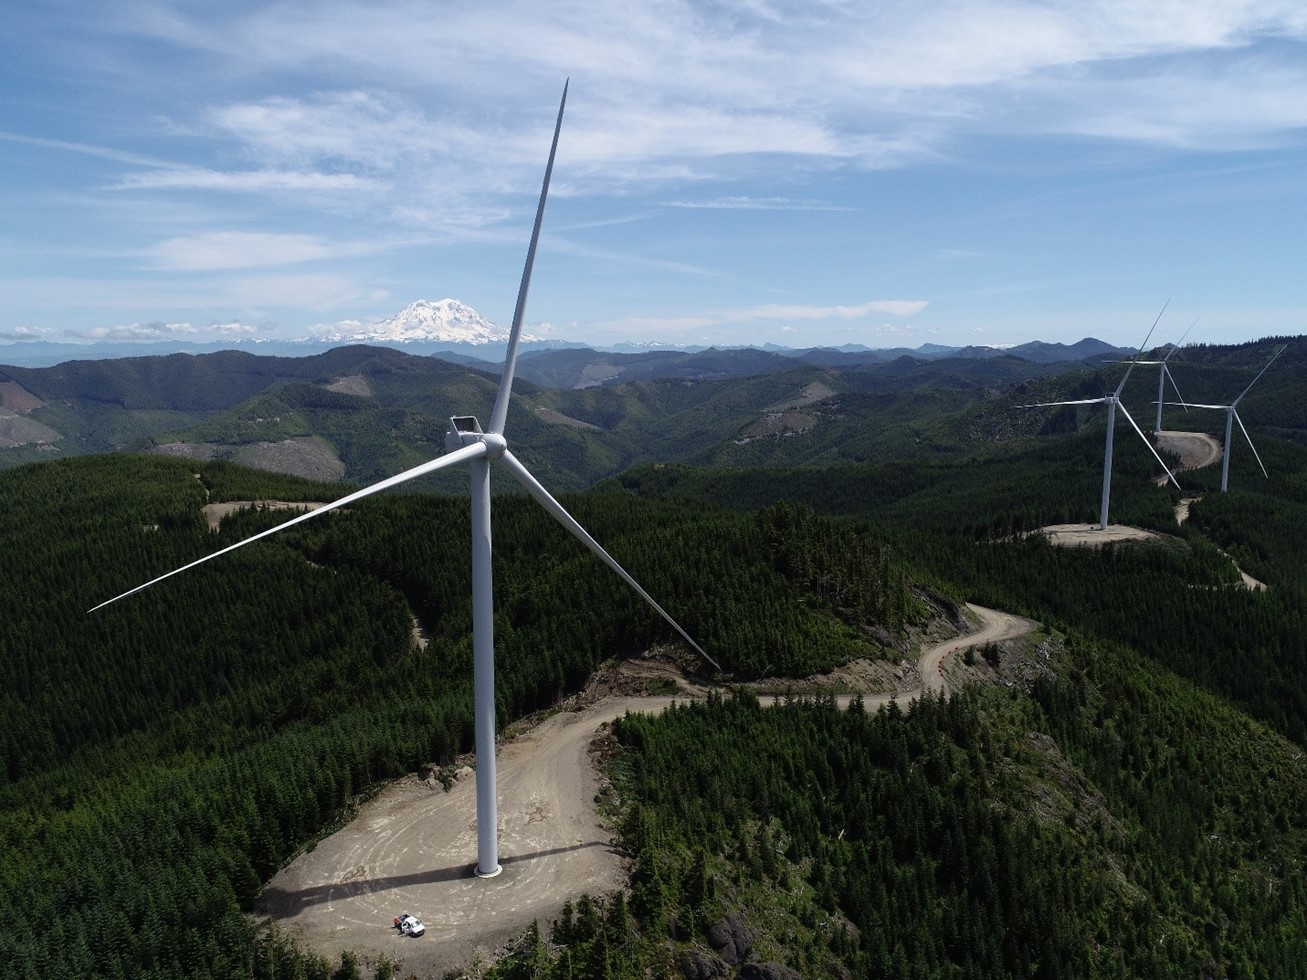 A single wind turbine on a hill surrounded by trees. A mount is the background of the picture.